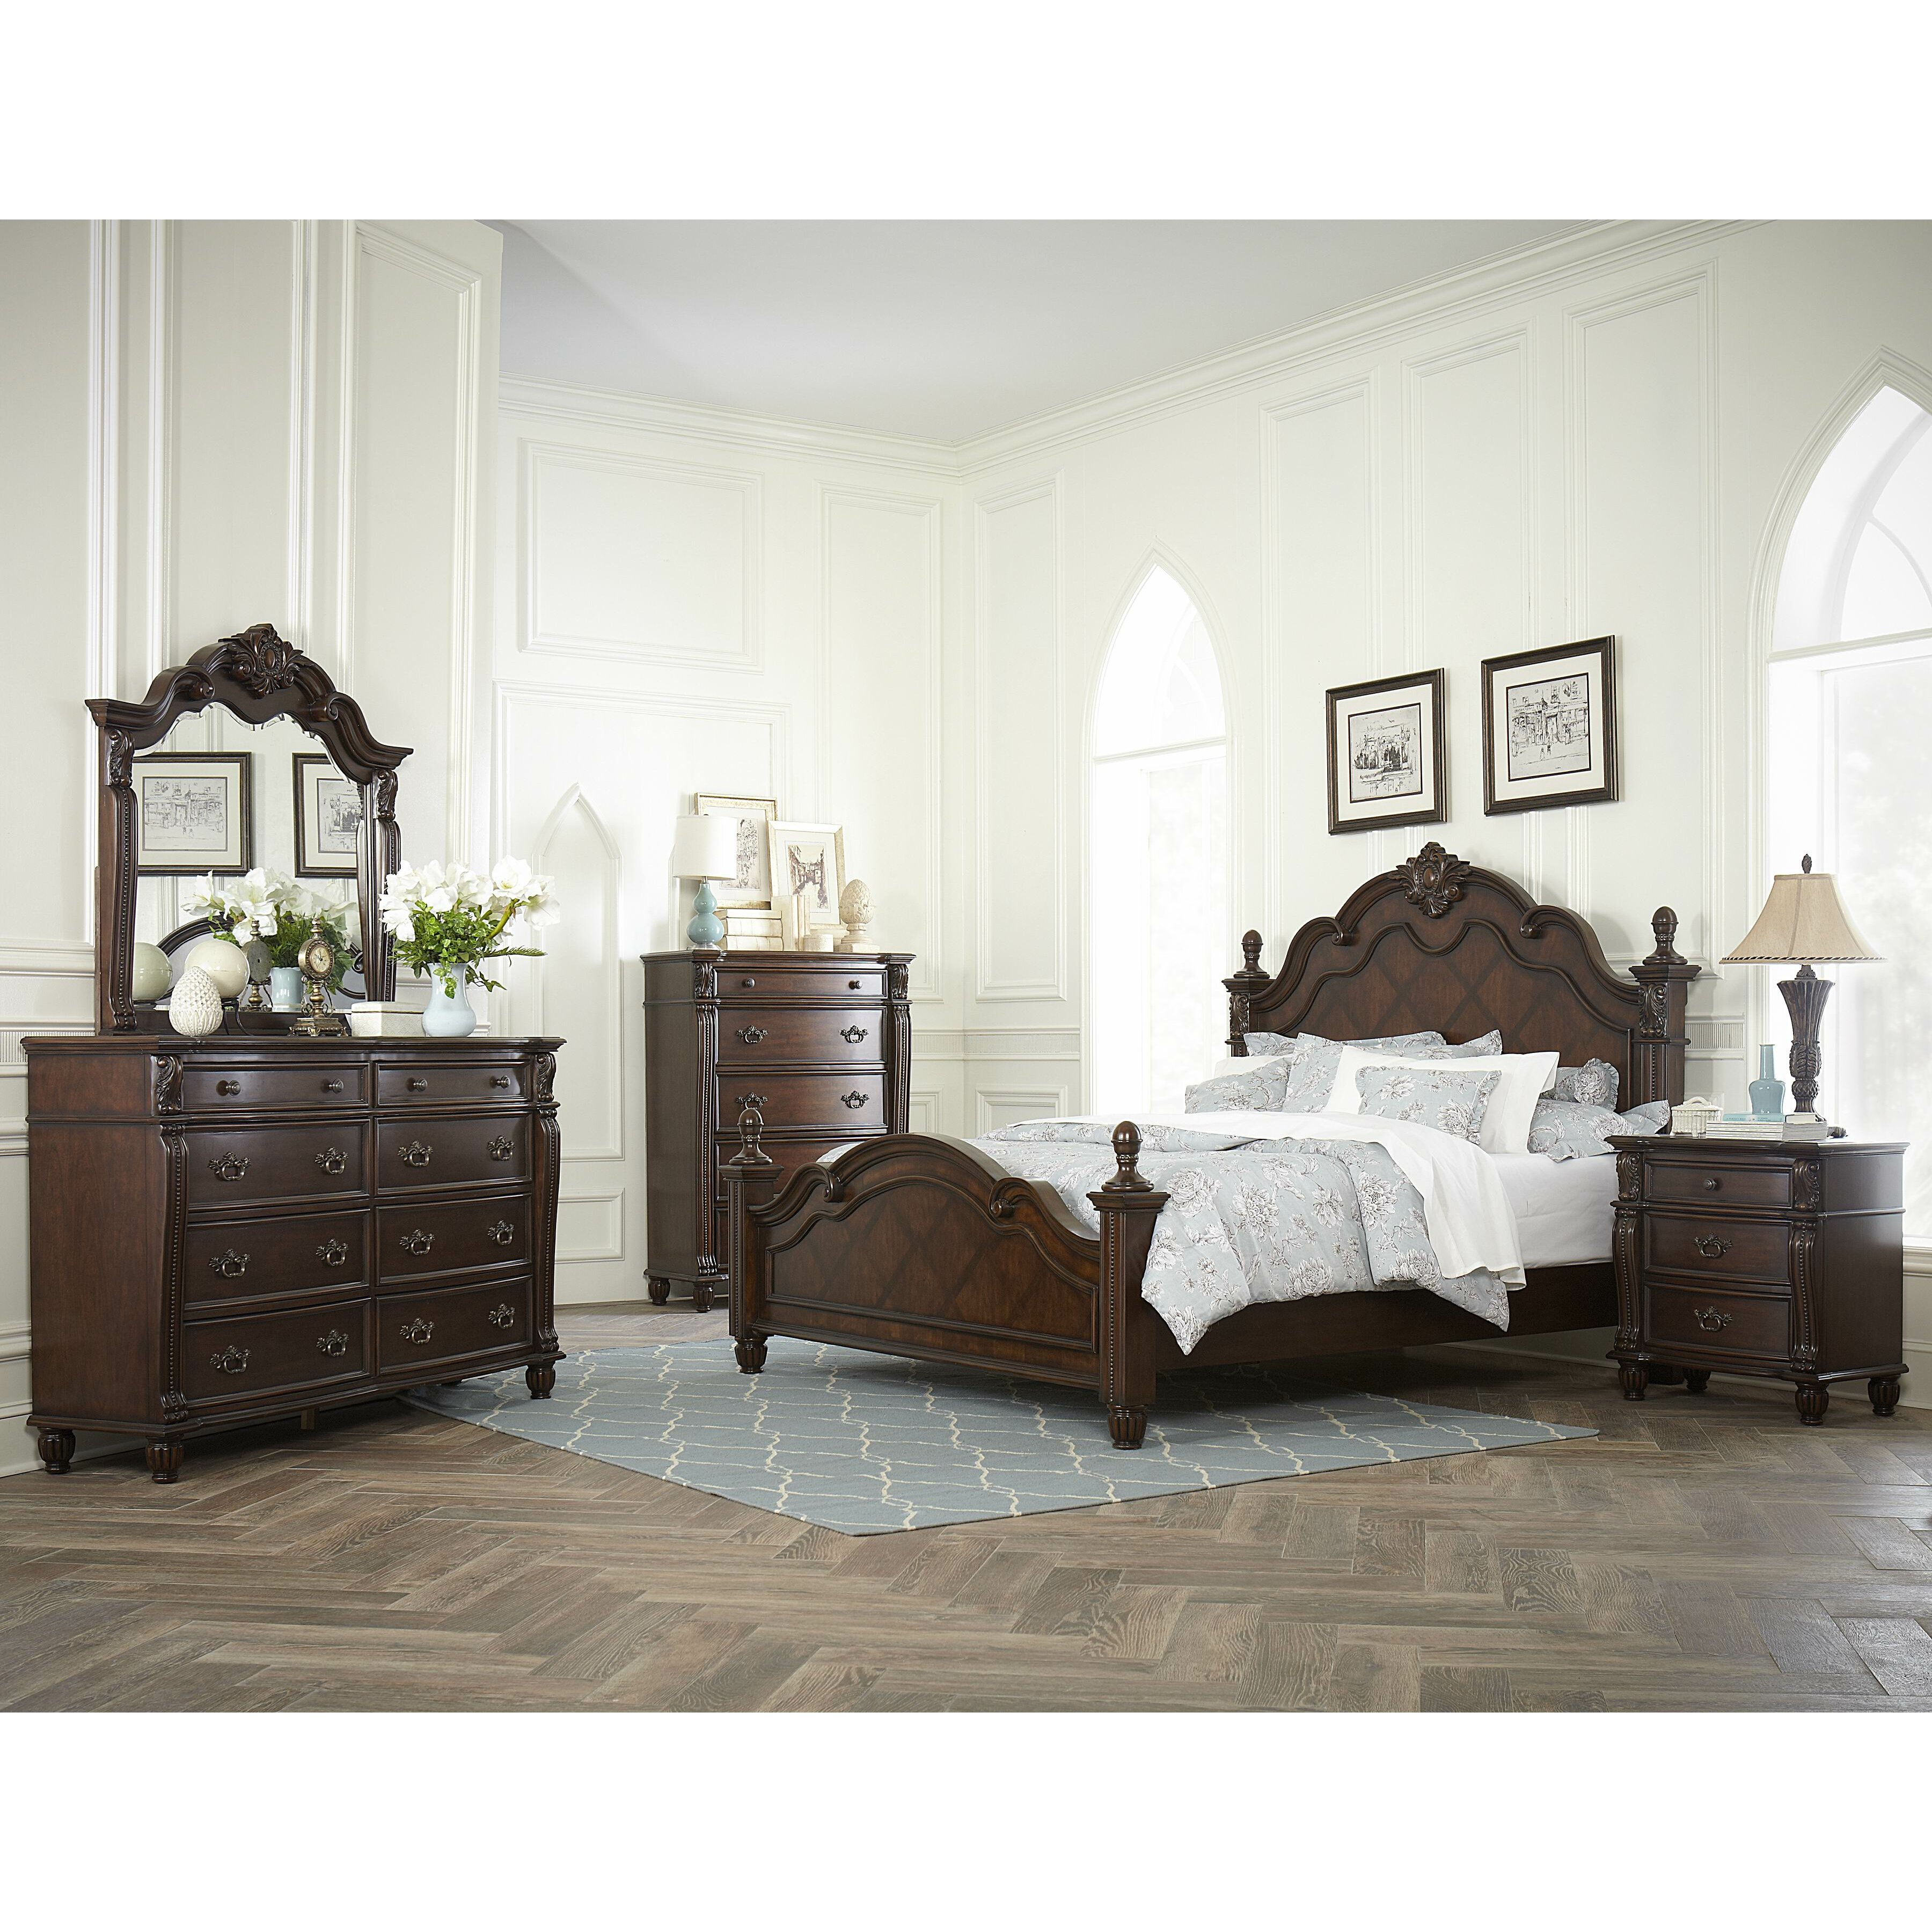 Woodbridge Home Designs Furniture Review Woodhaven Hill Hadley Row Panel Bed Amp Reviews Wayfair